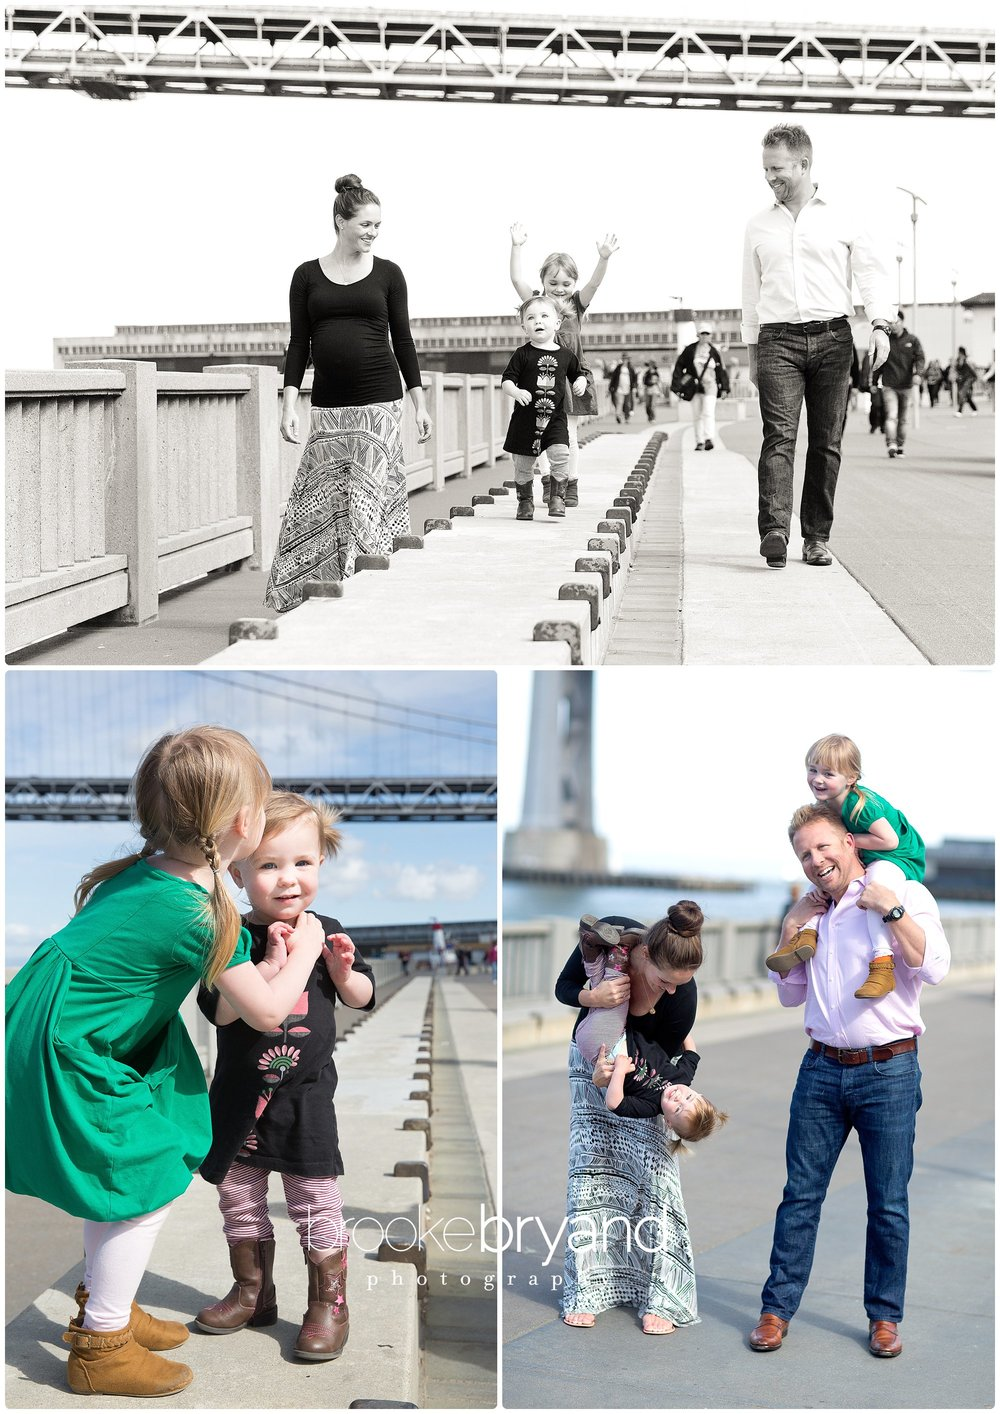 04.2014-James-Bow-and-Arrow-Maternity-photos-BBP_9463-BrookeBryand_San-Francisco-Family-Photos-Brooke-Bryand-Photography.jpg